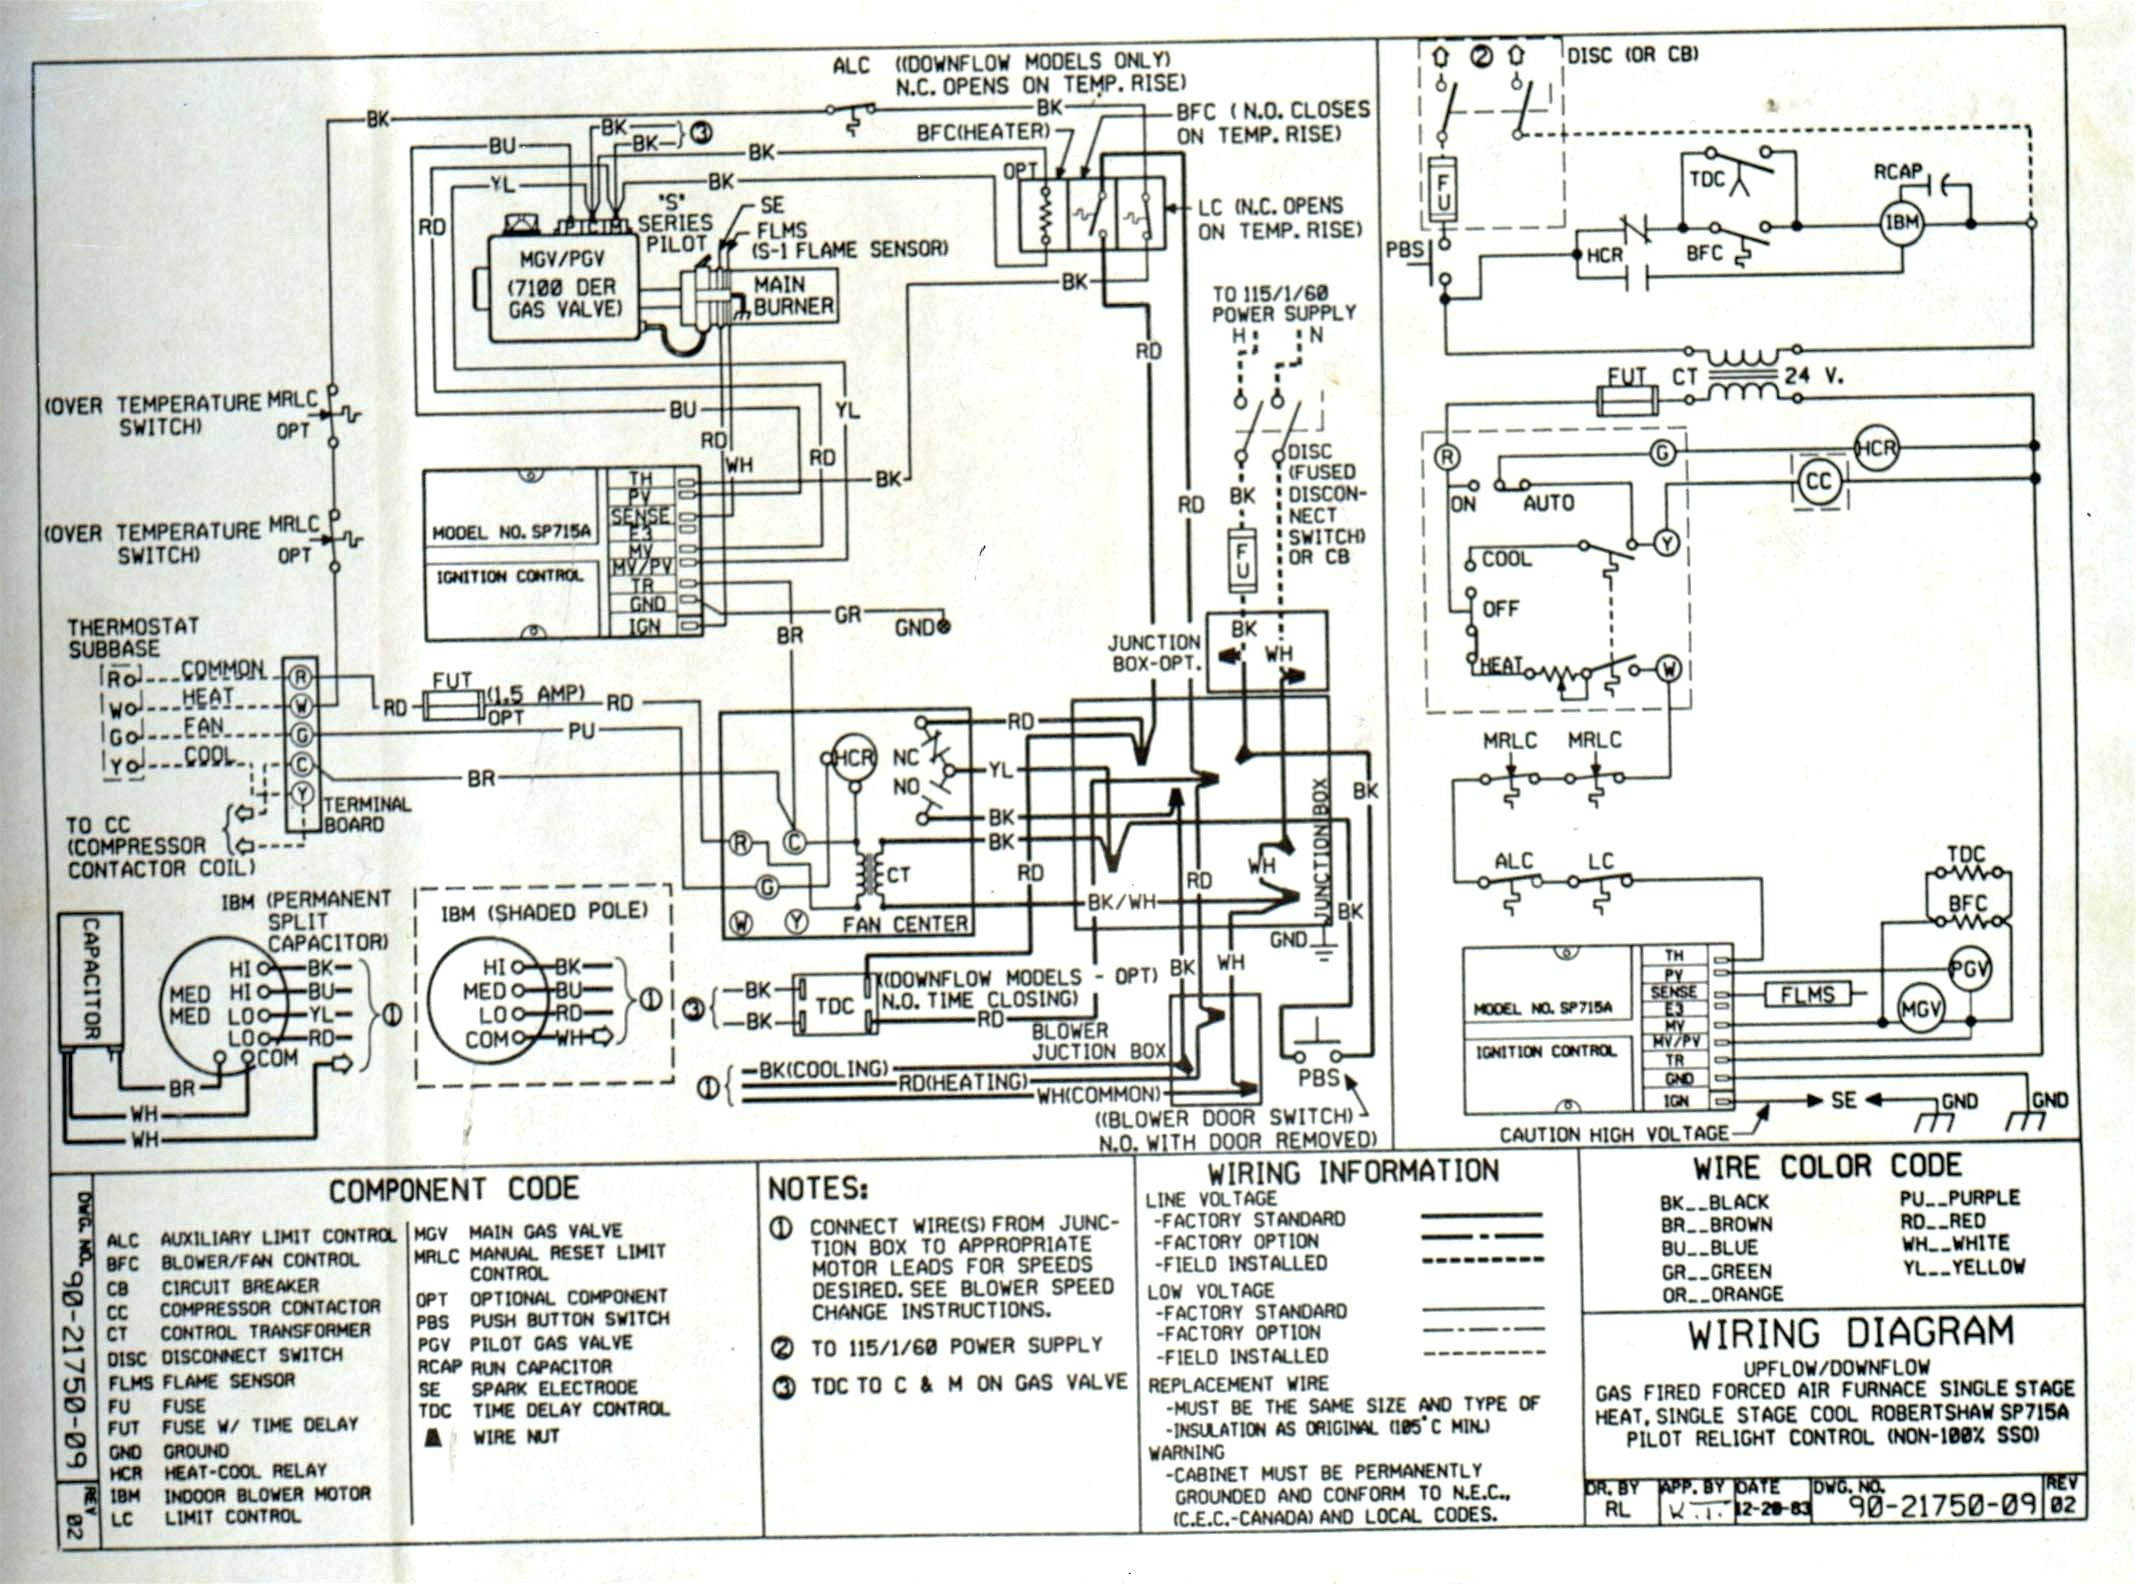 asco series 300 wiring diagram Collection-Asco Series 300 Wiring Diagram Luxury Hvac thermostat Wiring Diagram Carrier Wonderful Advent Air 19-l